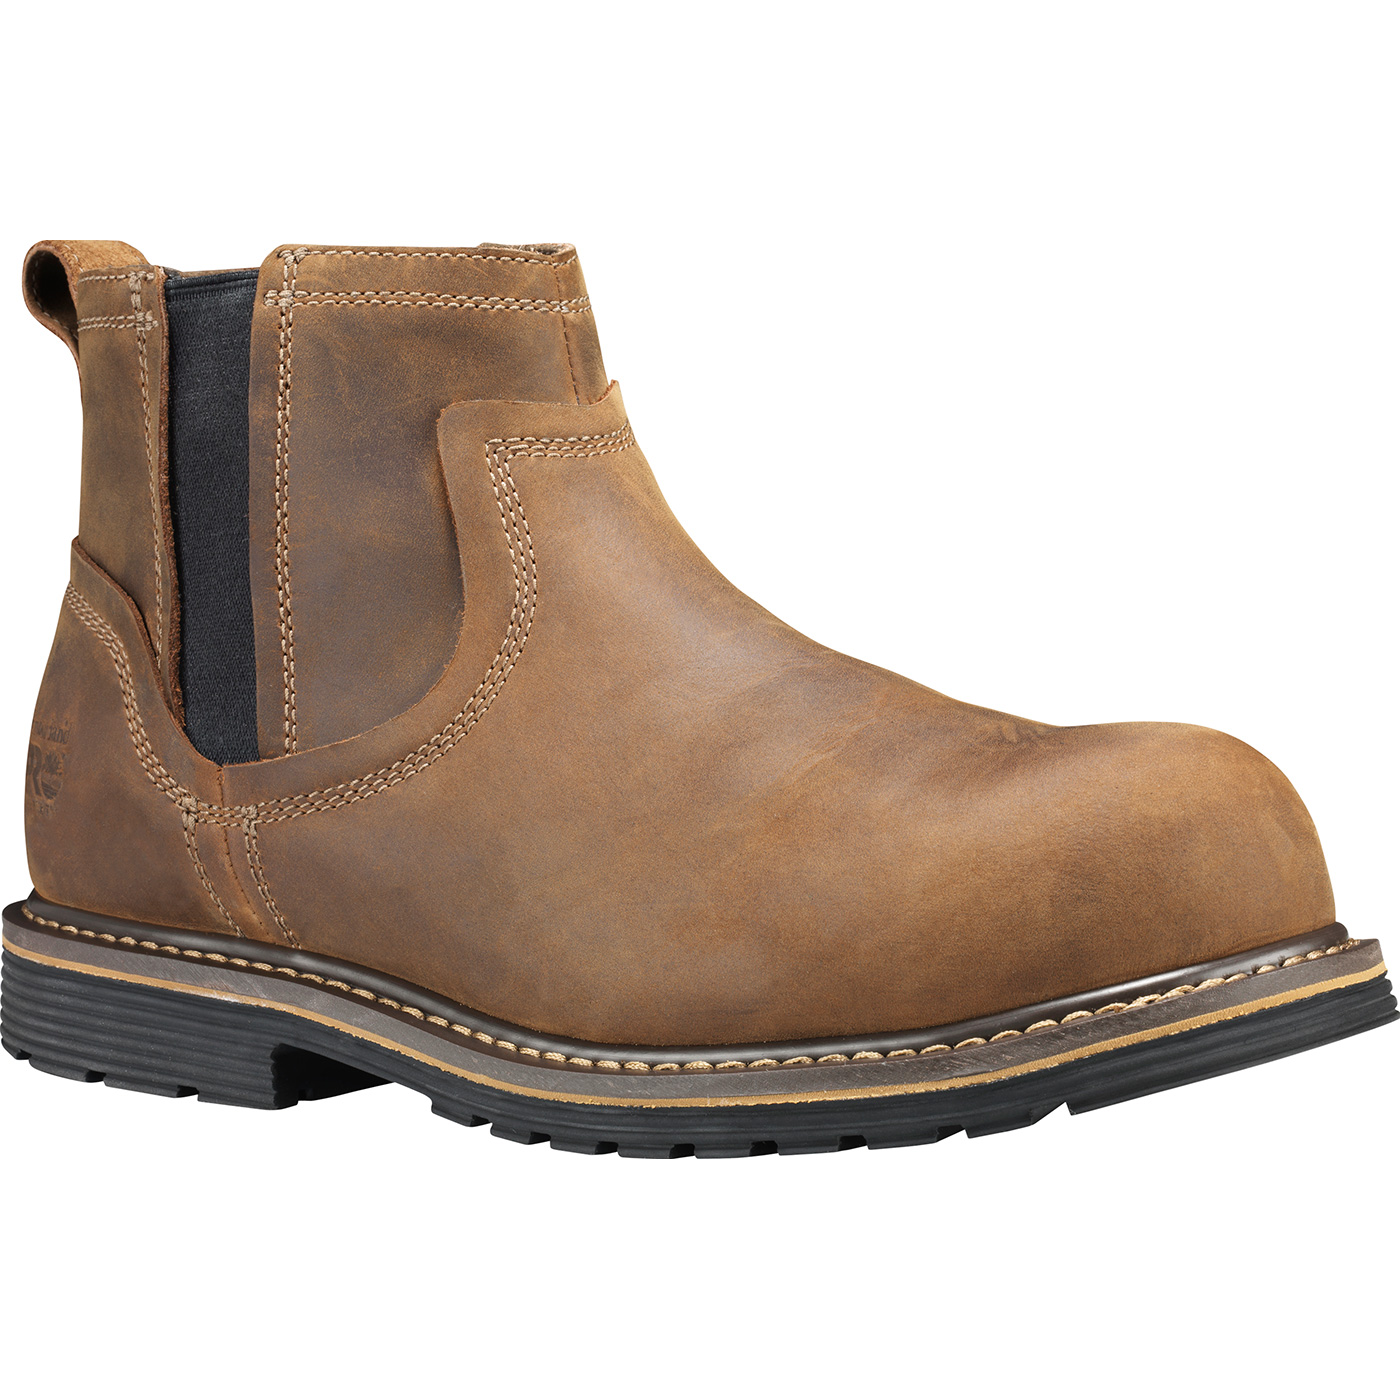 6b35254bc56 Timberland PRO Millworks Men's Composite Toe Electrical Hazard Leather  Romeo Work Boot